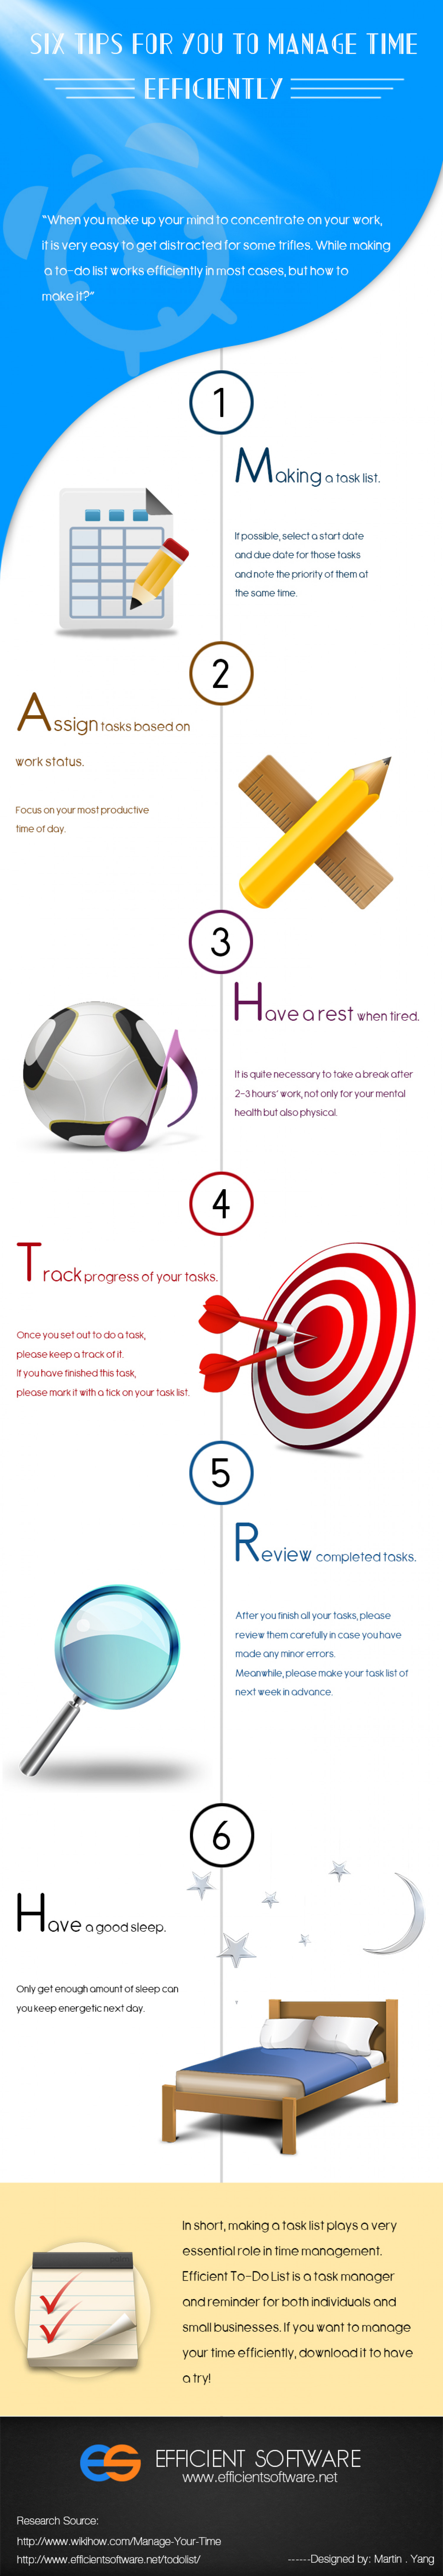 Six Tips for You to Manage Time Efficiently Infographic